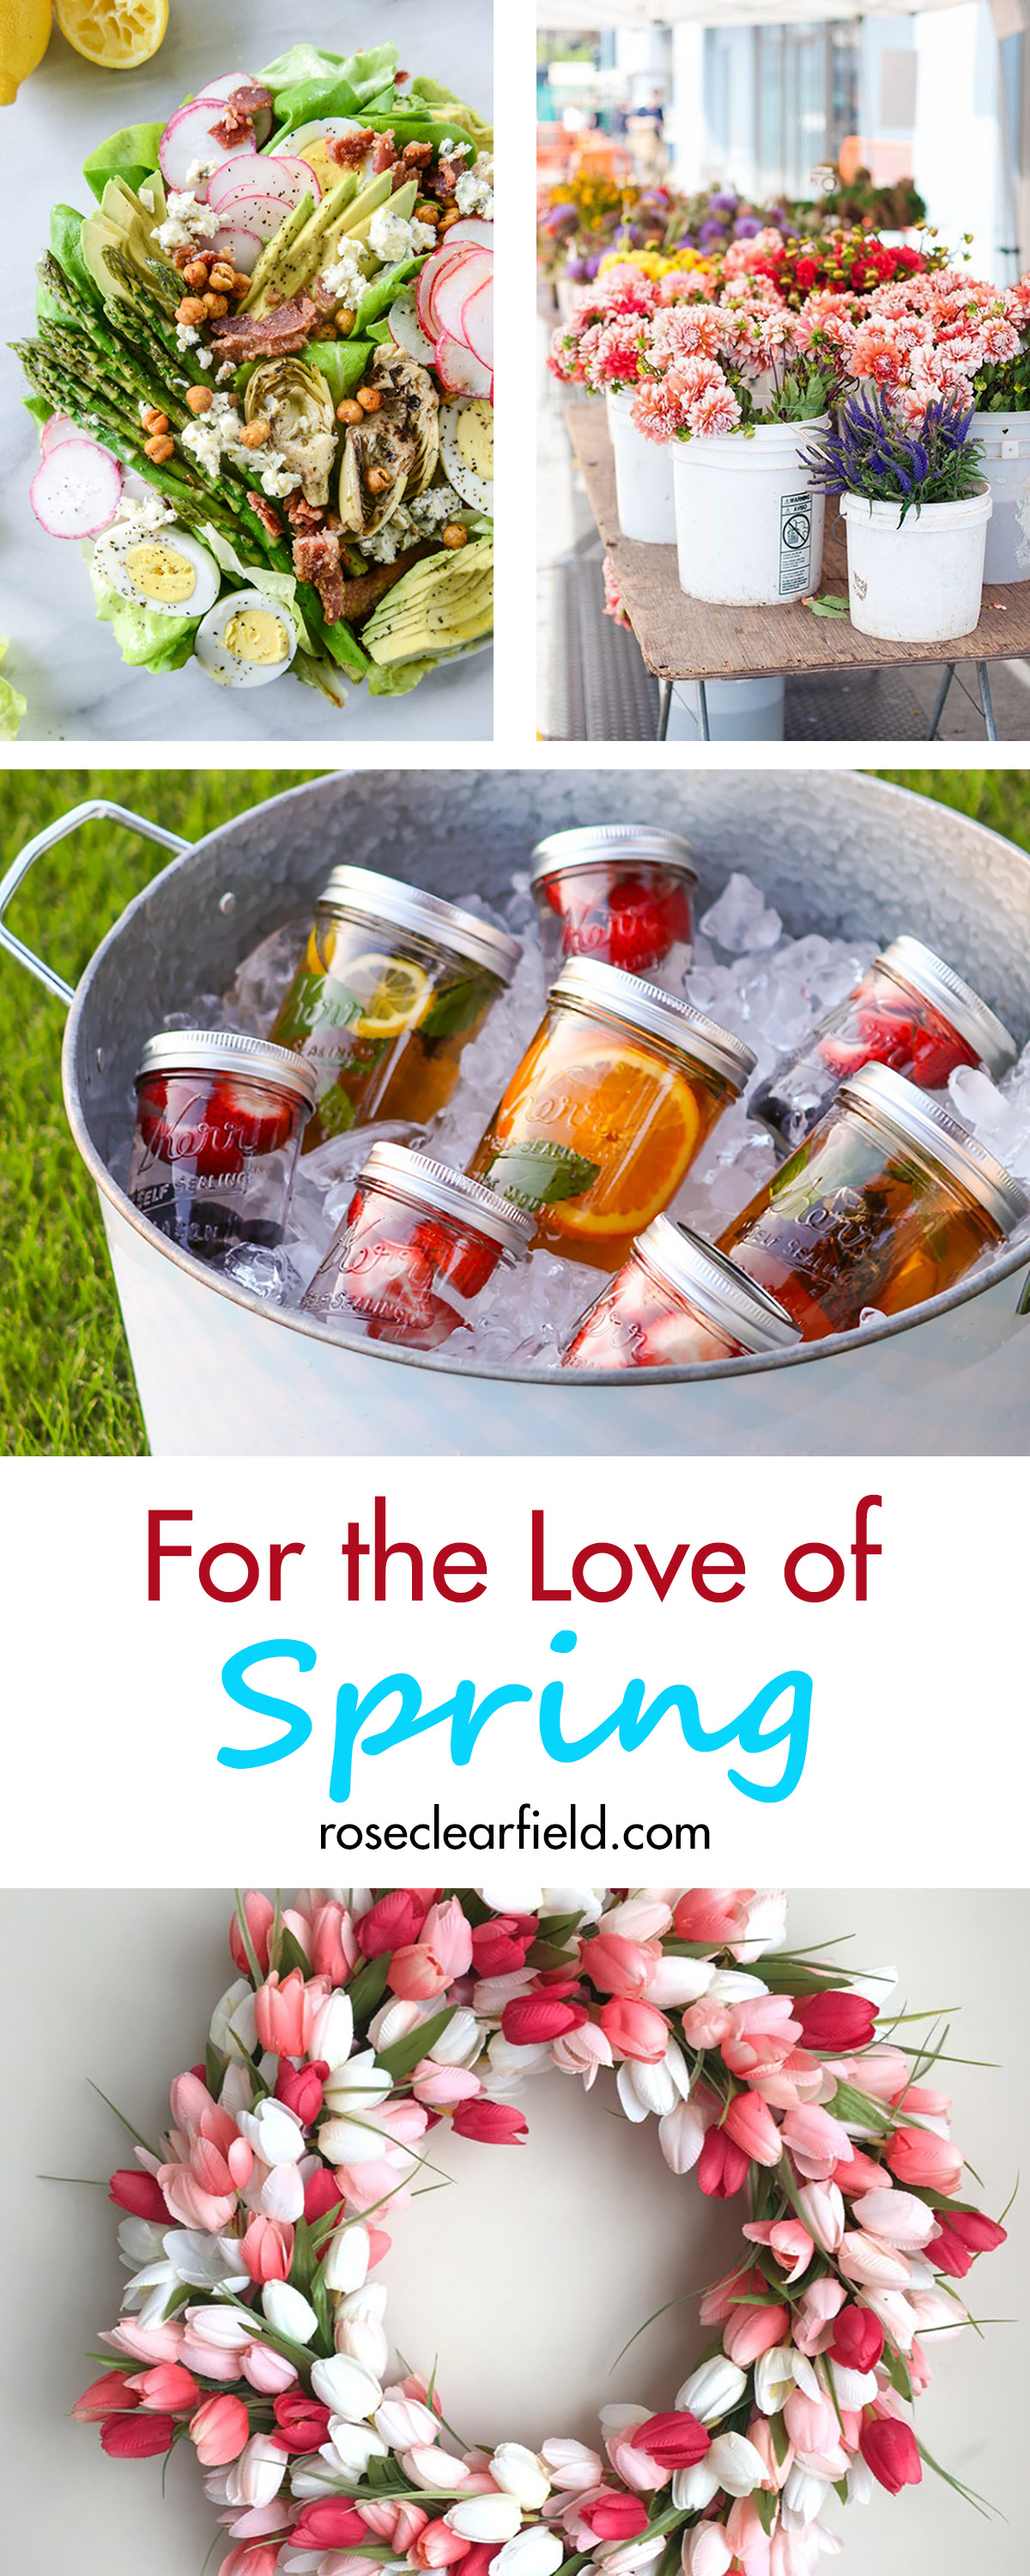 For the Love of Spring | http://www.roseclearfield.com